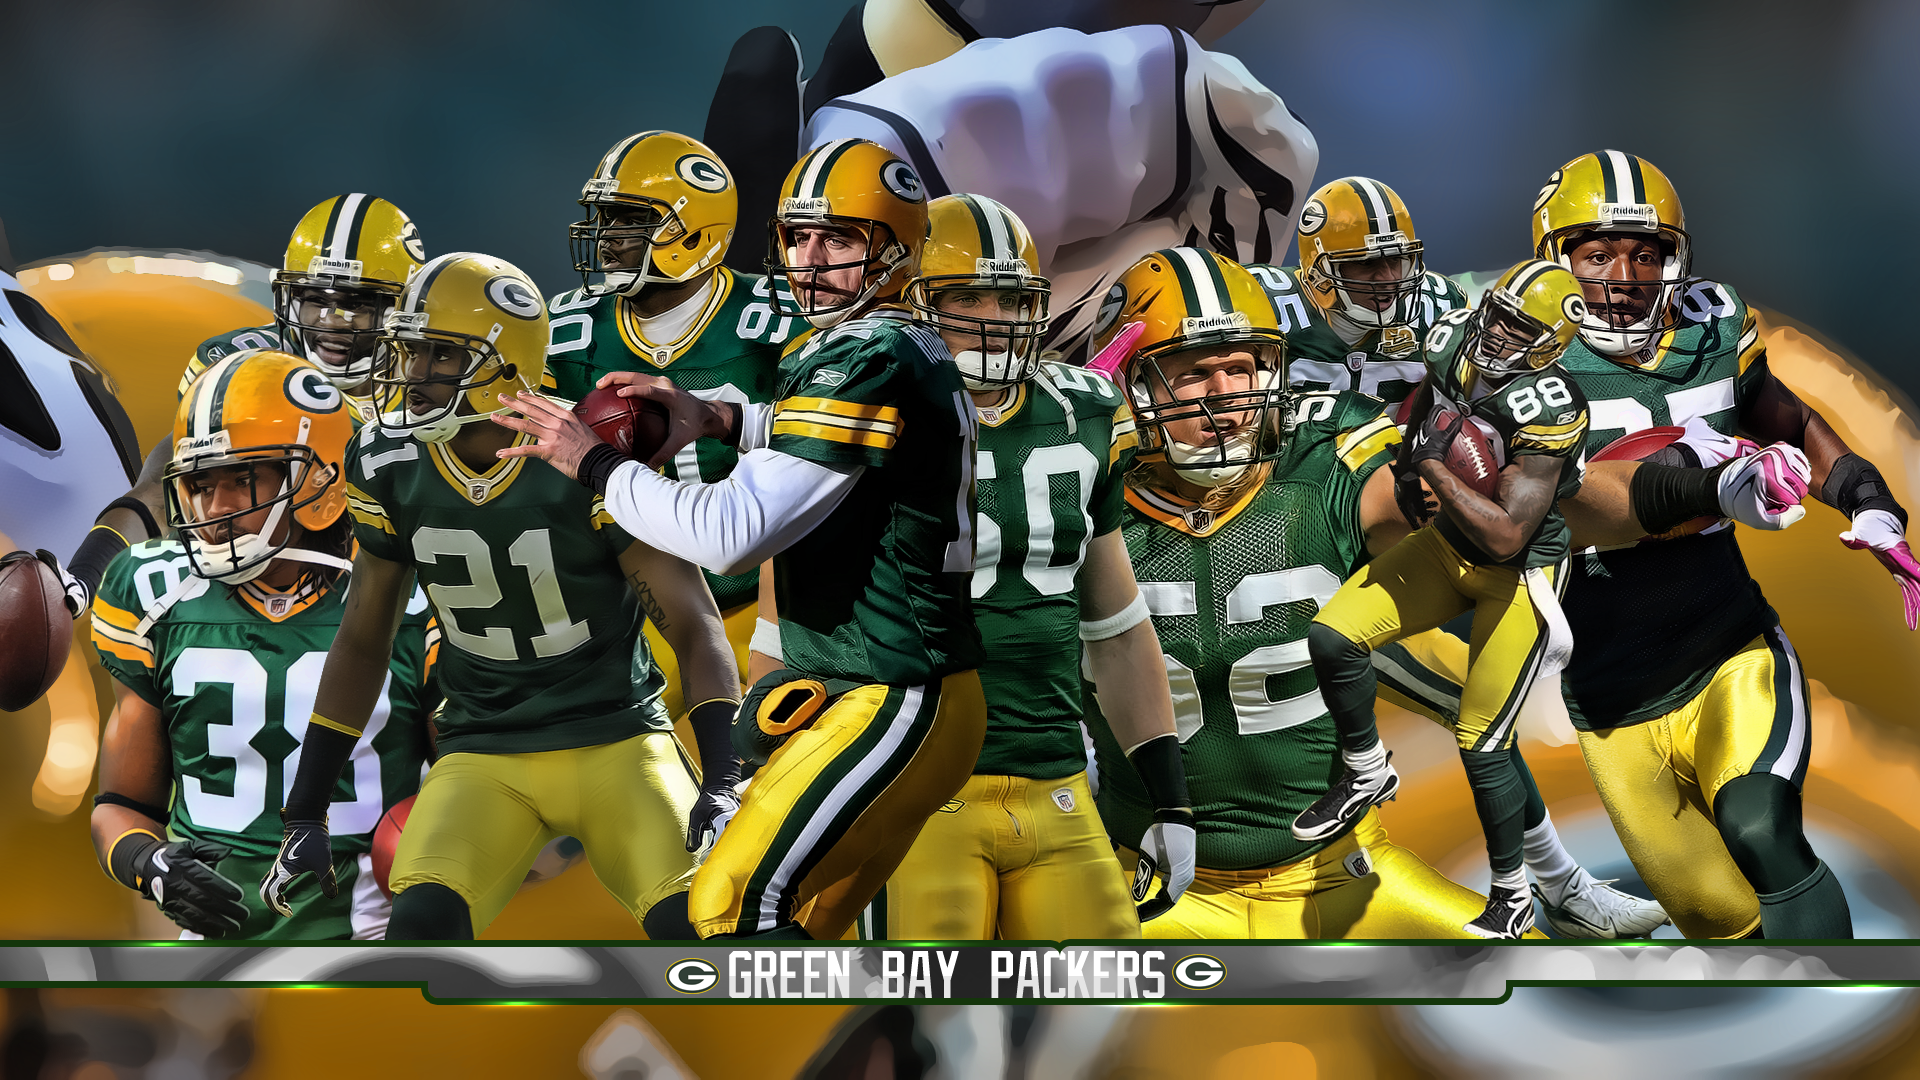 Free-desktop-packers-image-Fulton-Black-1920-x-1080-wallpaper-wpc5805045